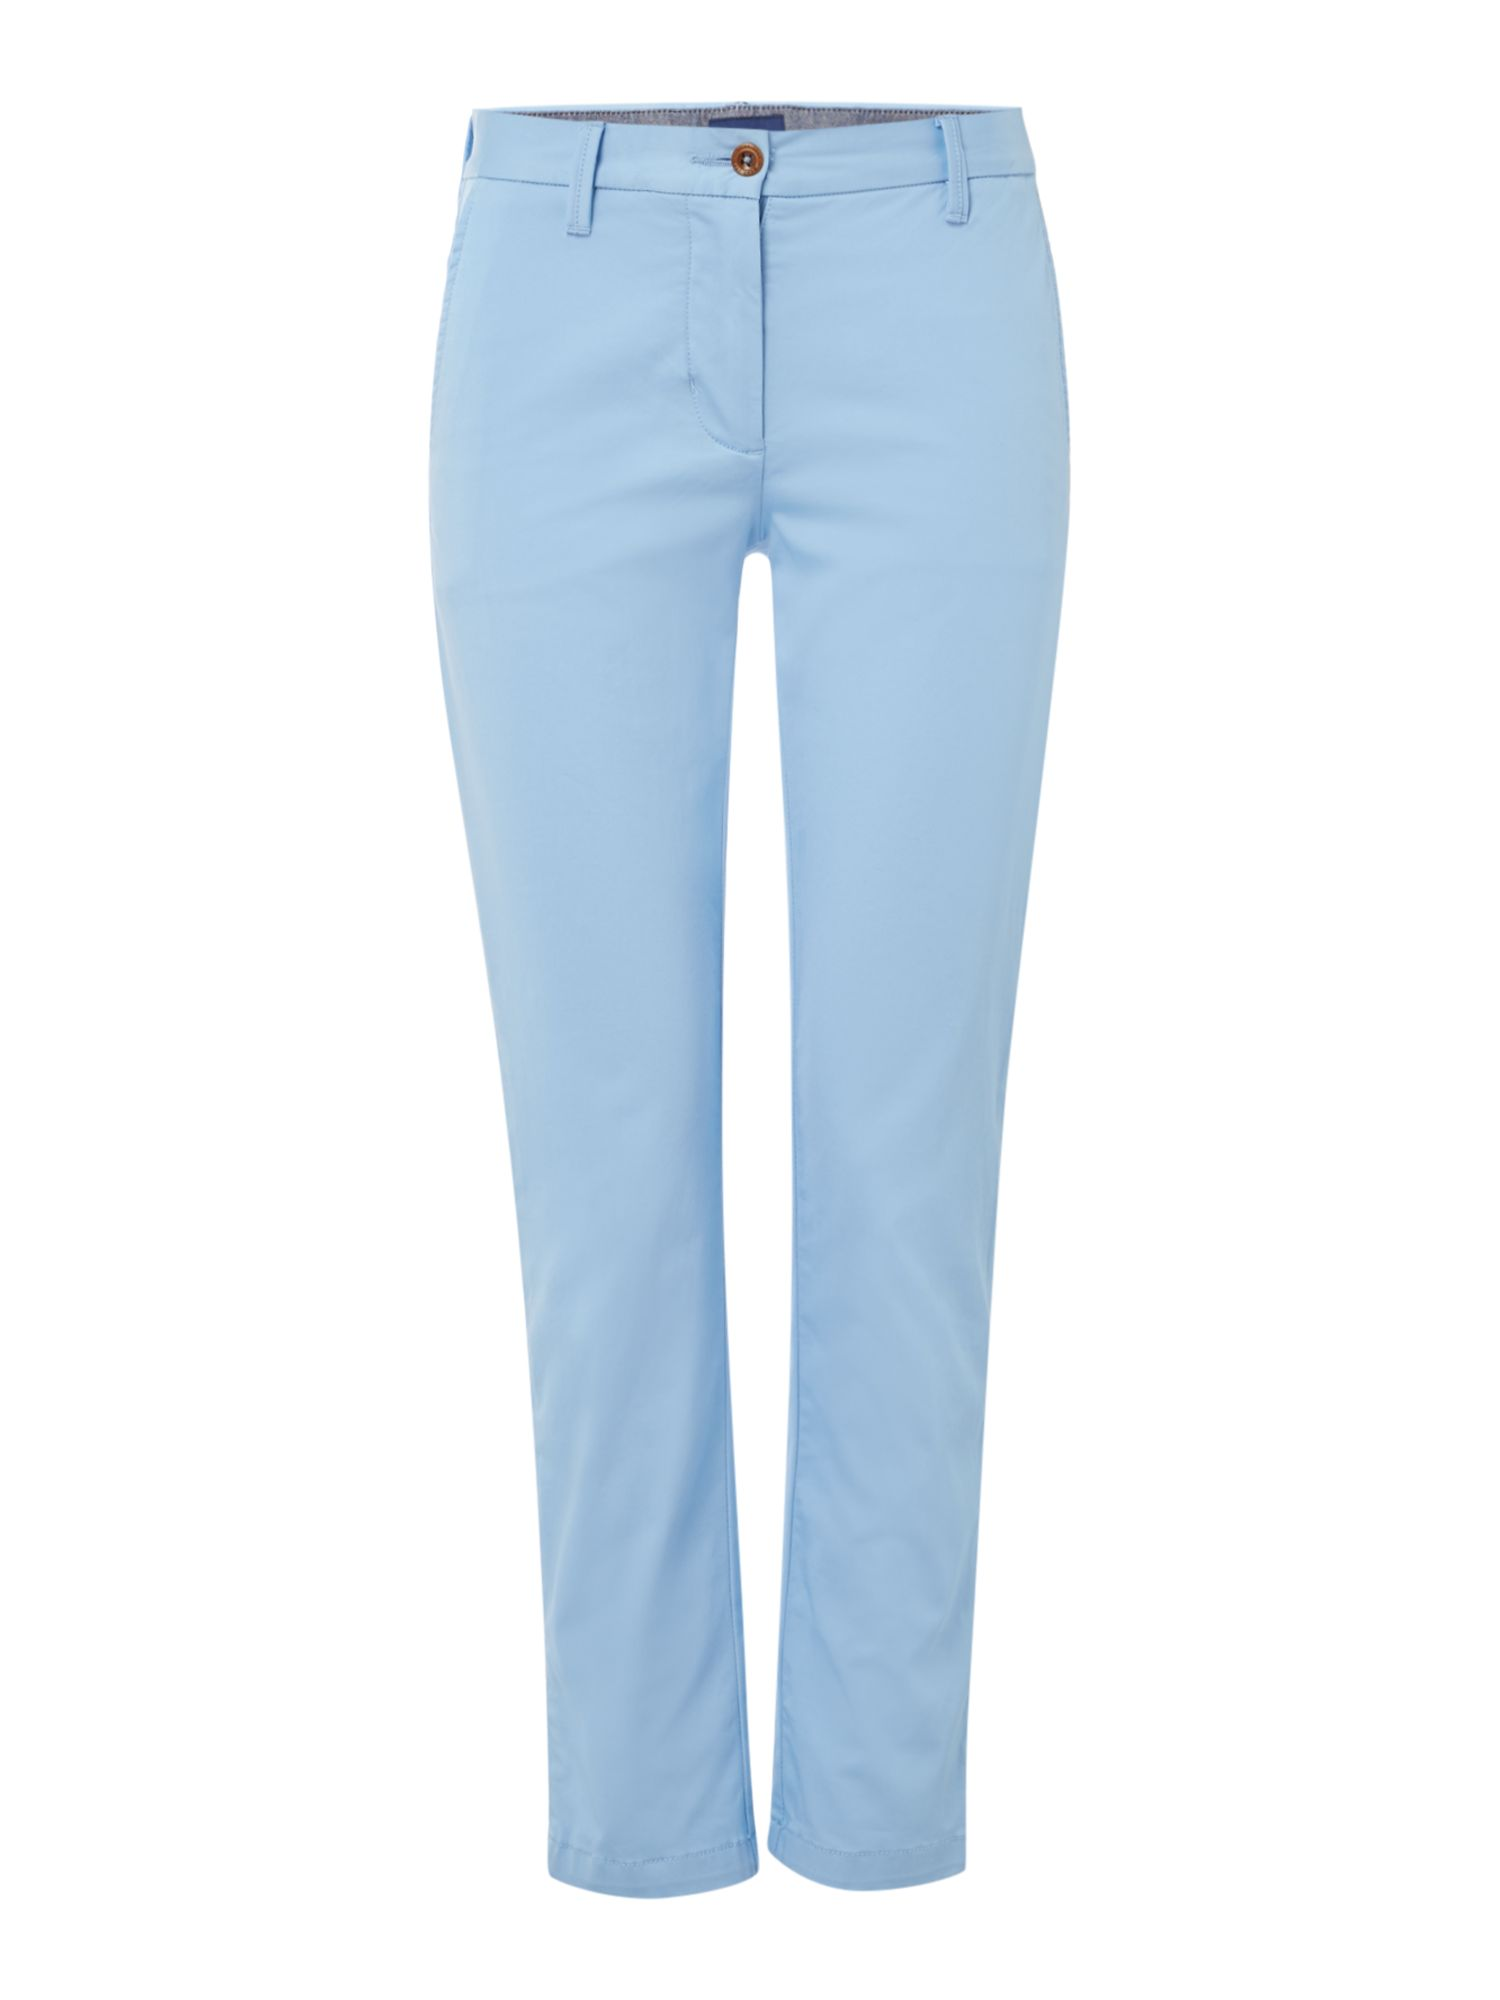 GANT Classic Cropped Chino Trousers, Light Blue